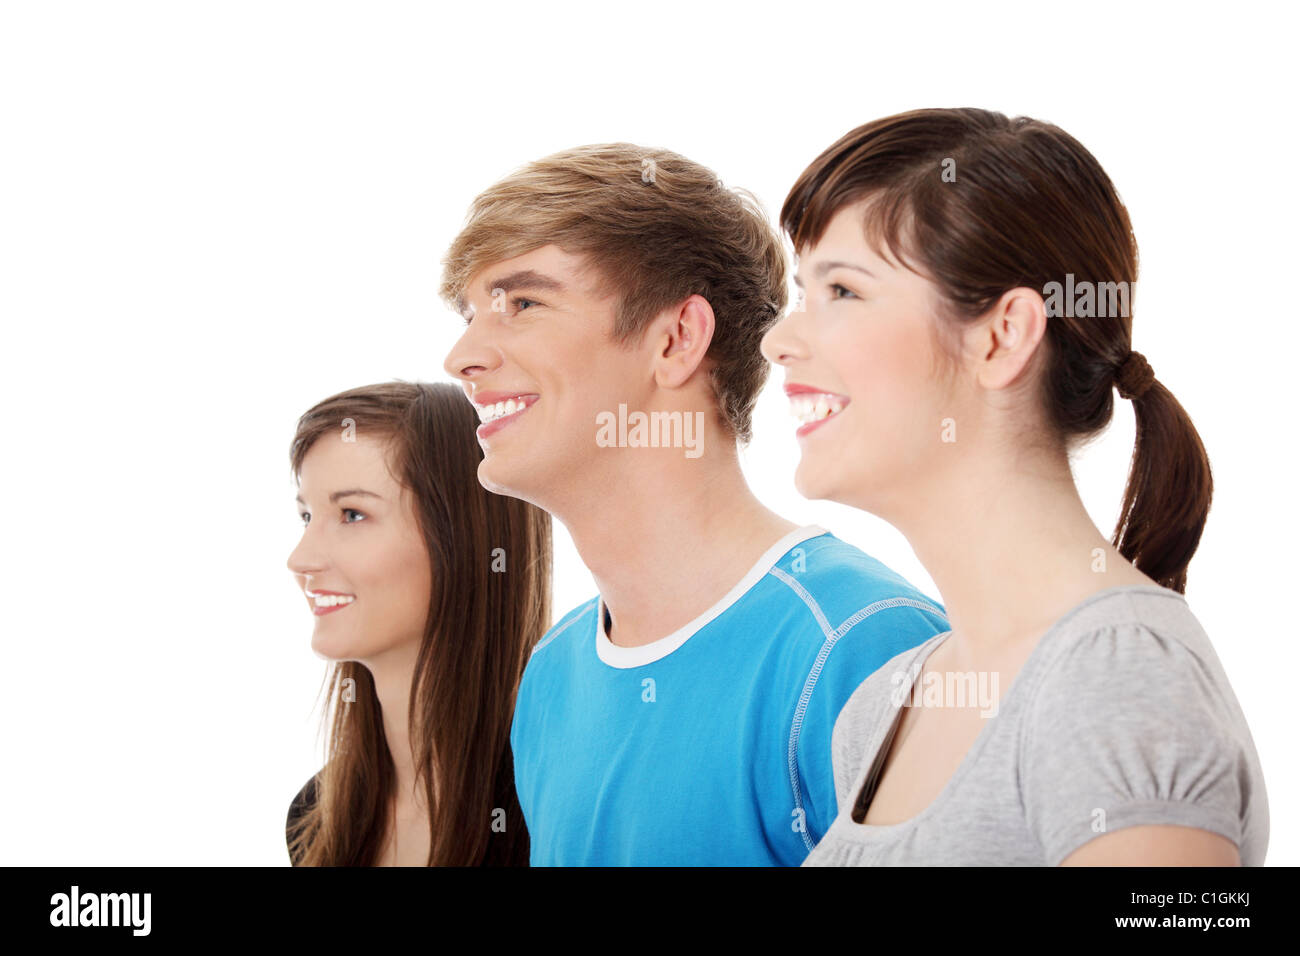 Three Young Happy Friends. Two Girls One Boy Smiling And